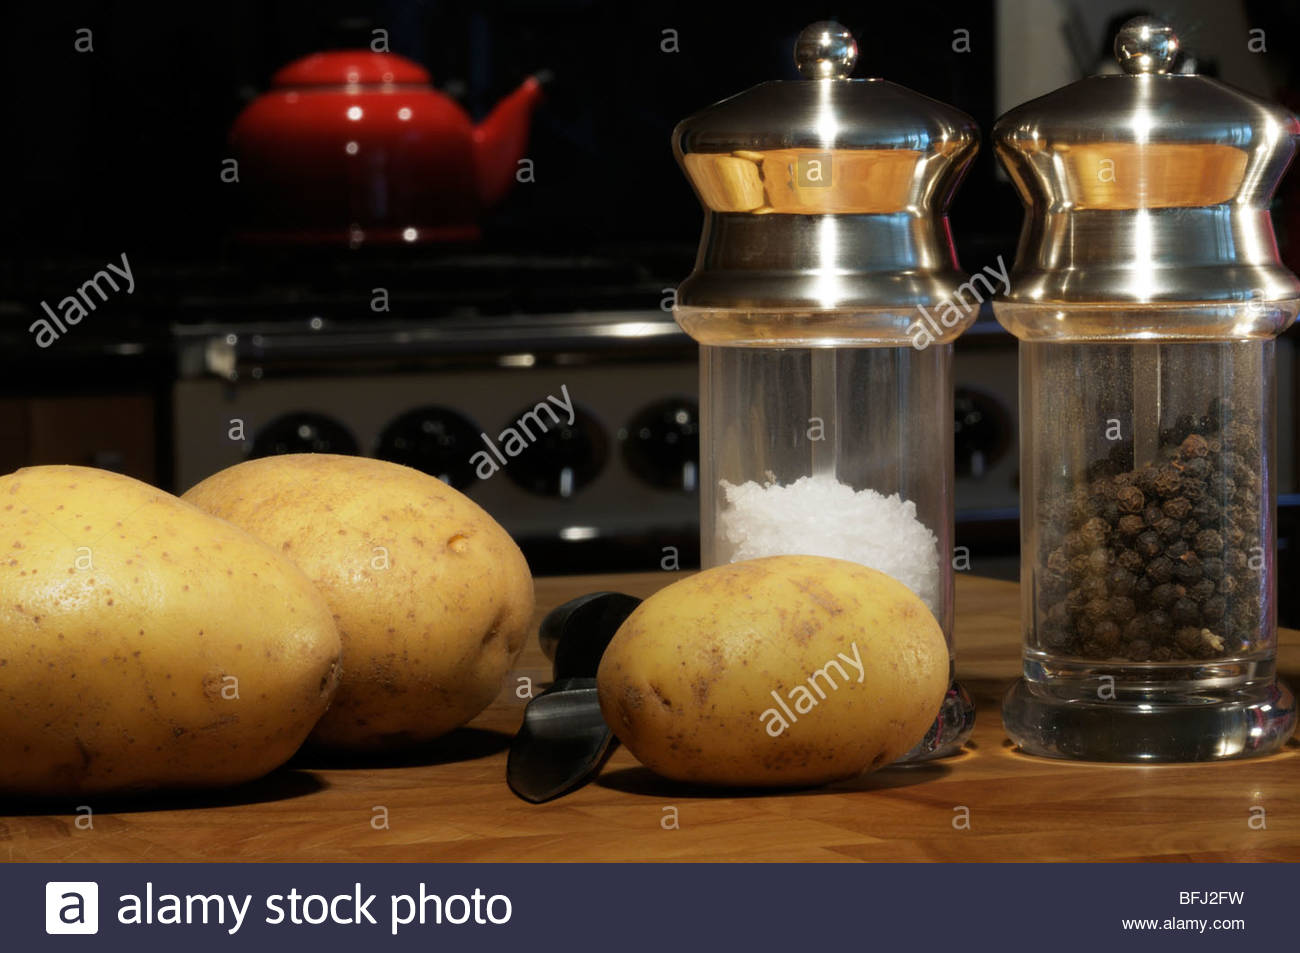 Potatoes along with salt and pepper mills on a chopping board, Dorset, England, UK - Stock Image